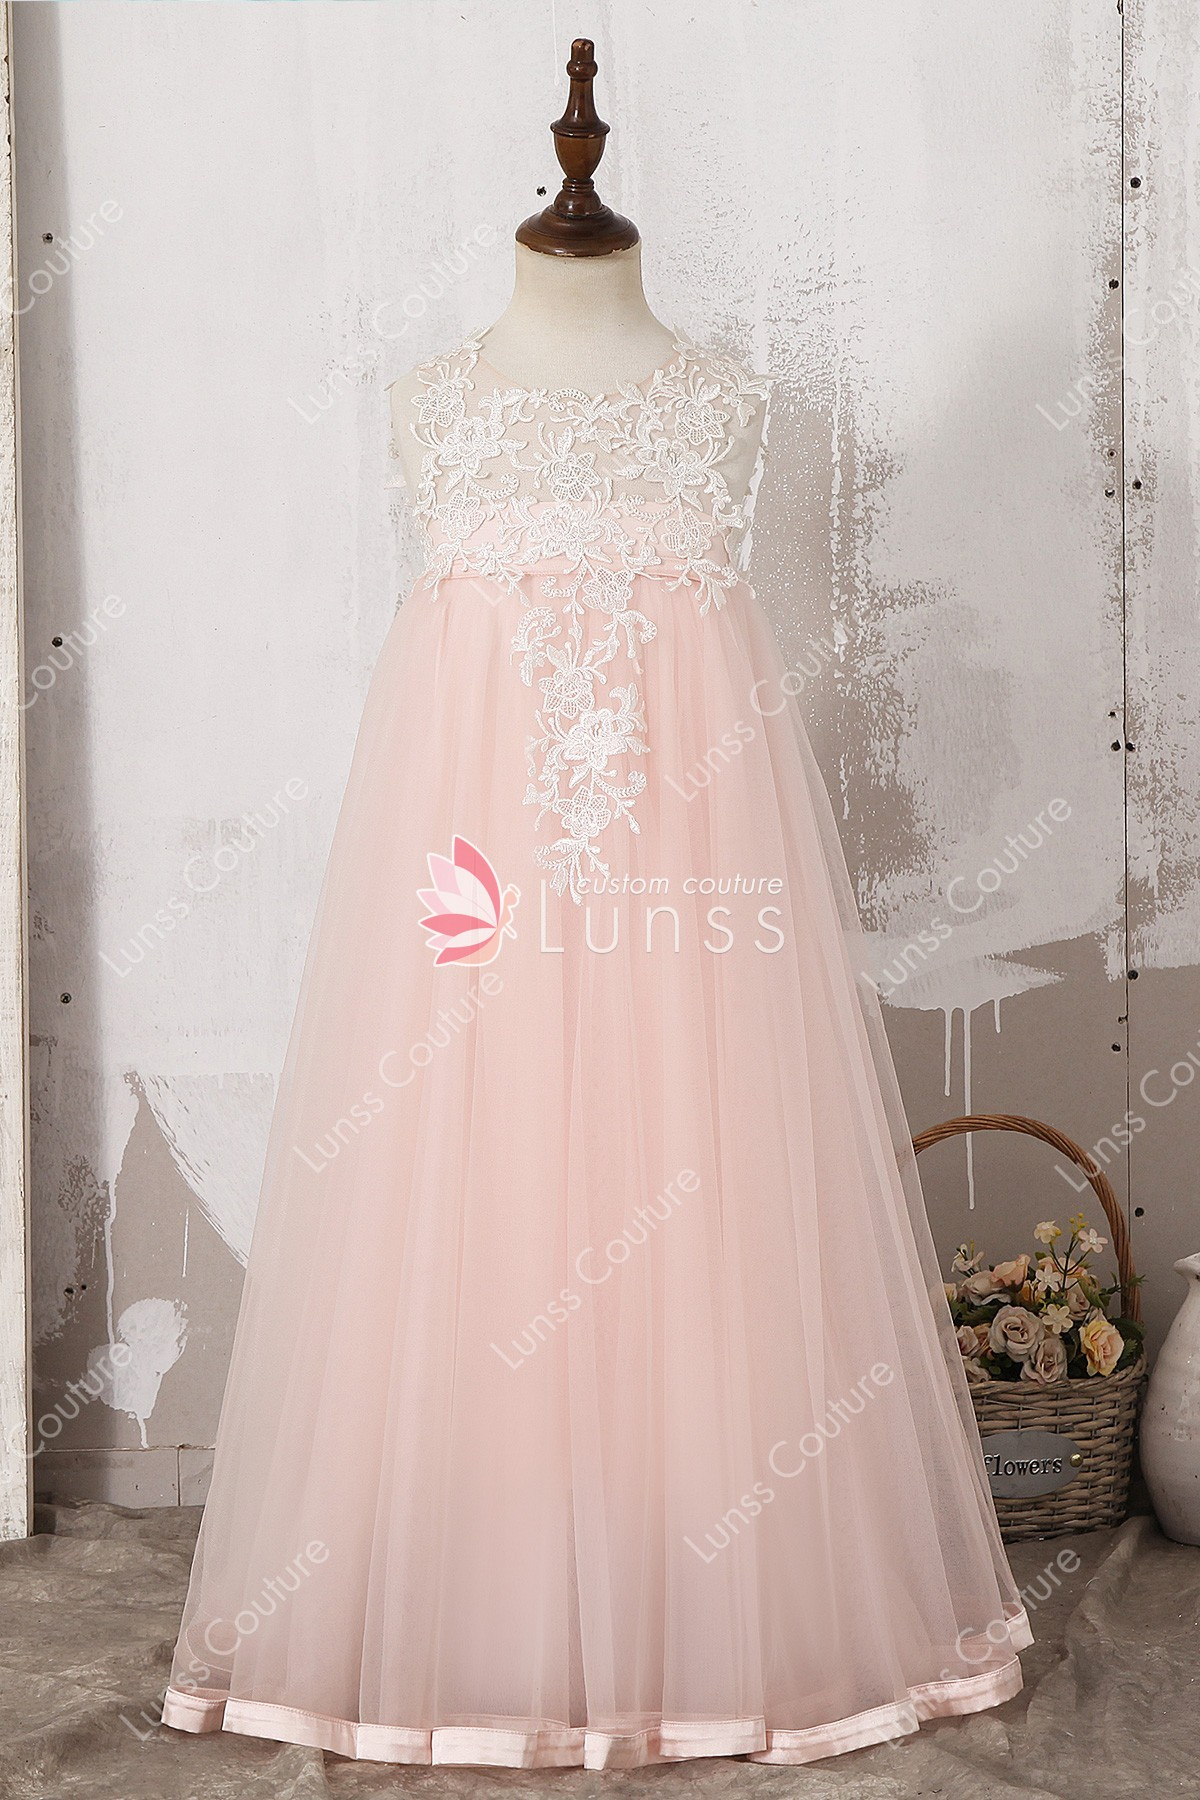 cba8bf855fb Designer Illusion Ivory Lace Blush Pink Tulle Ankle Length Flower ...